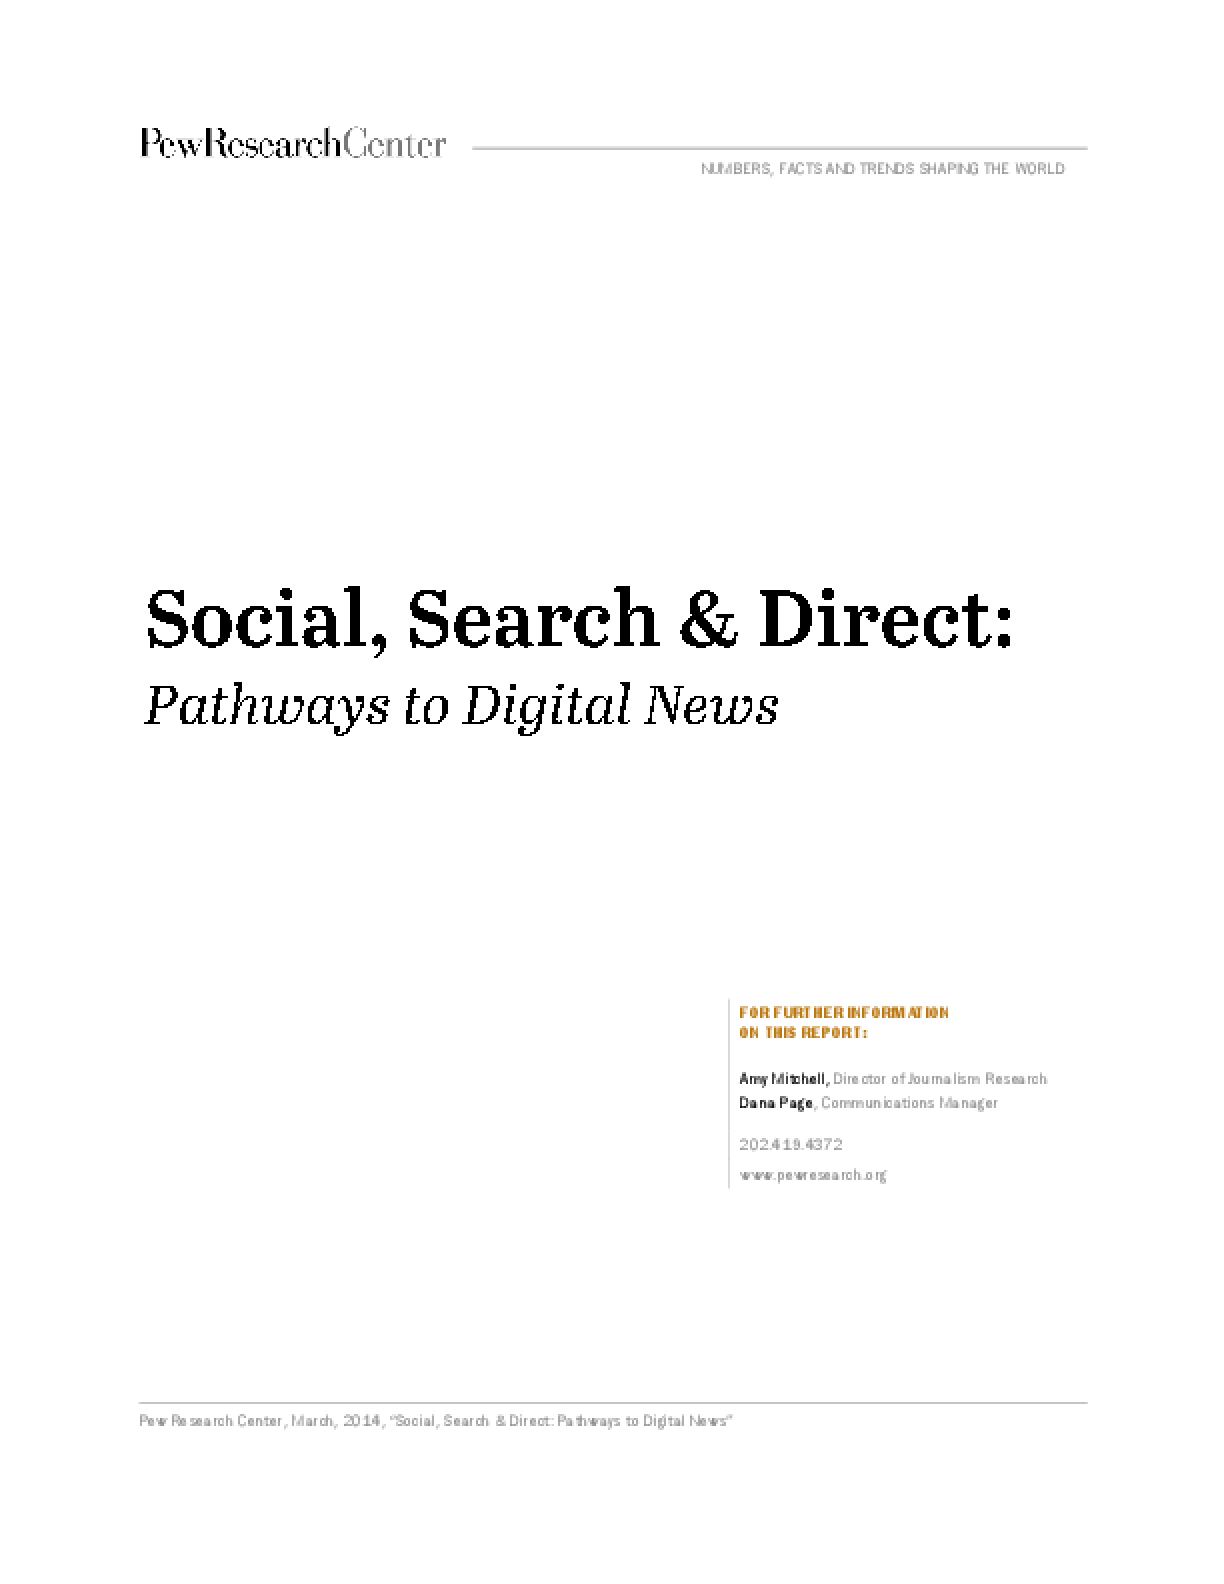 Social, Search and Direct: Pathways to Digital News